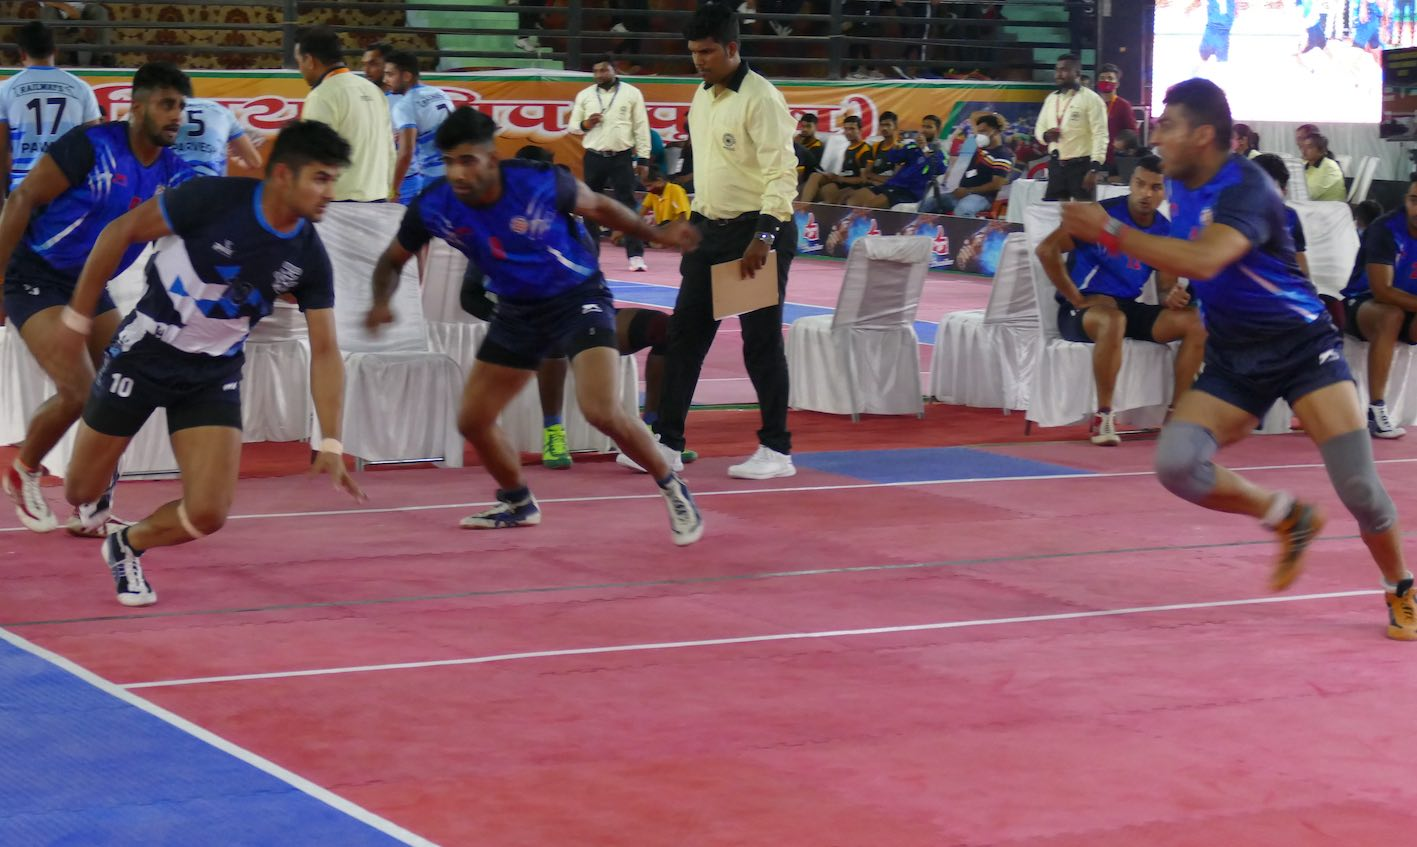 Home team UP knocked out, Maharashtra through to semis by a whisker | 68th Senior Nationals